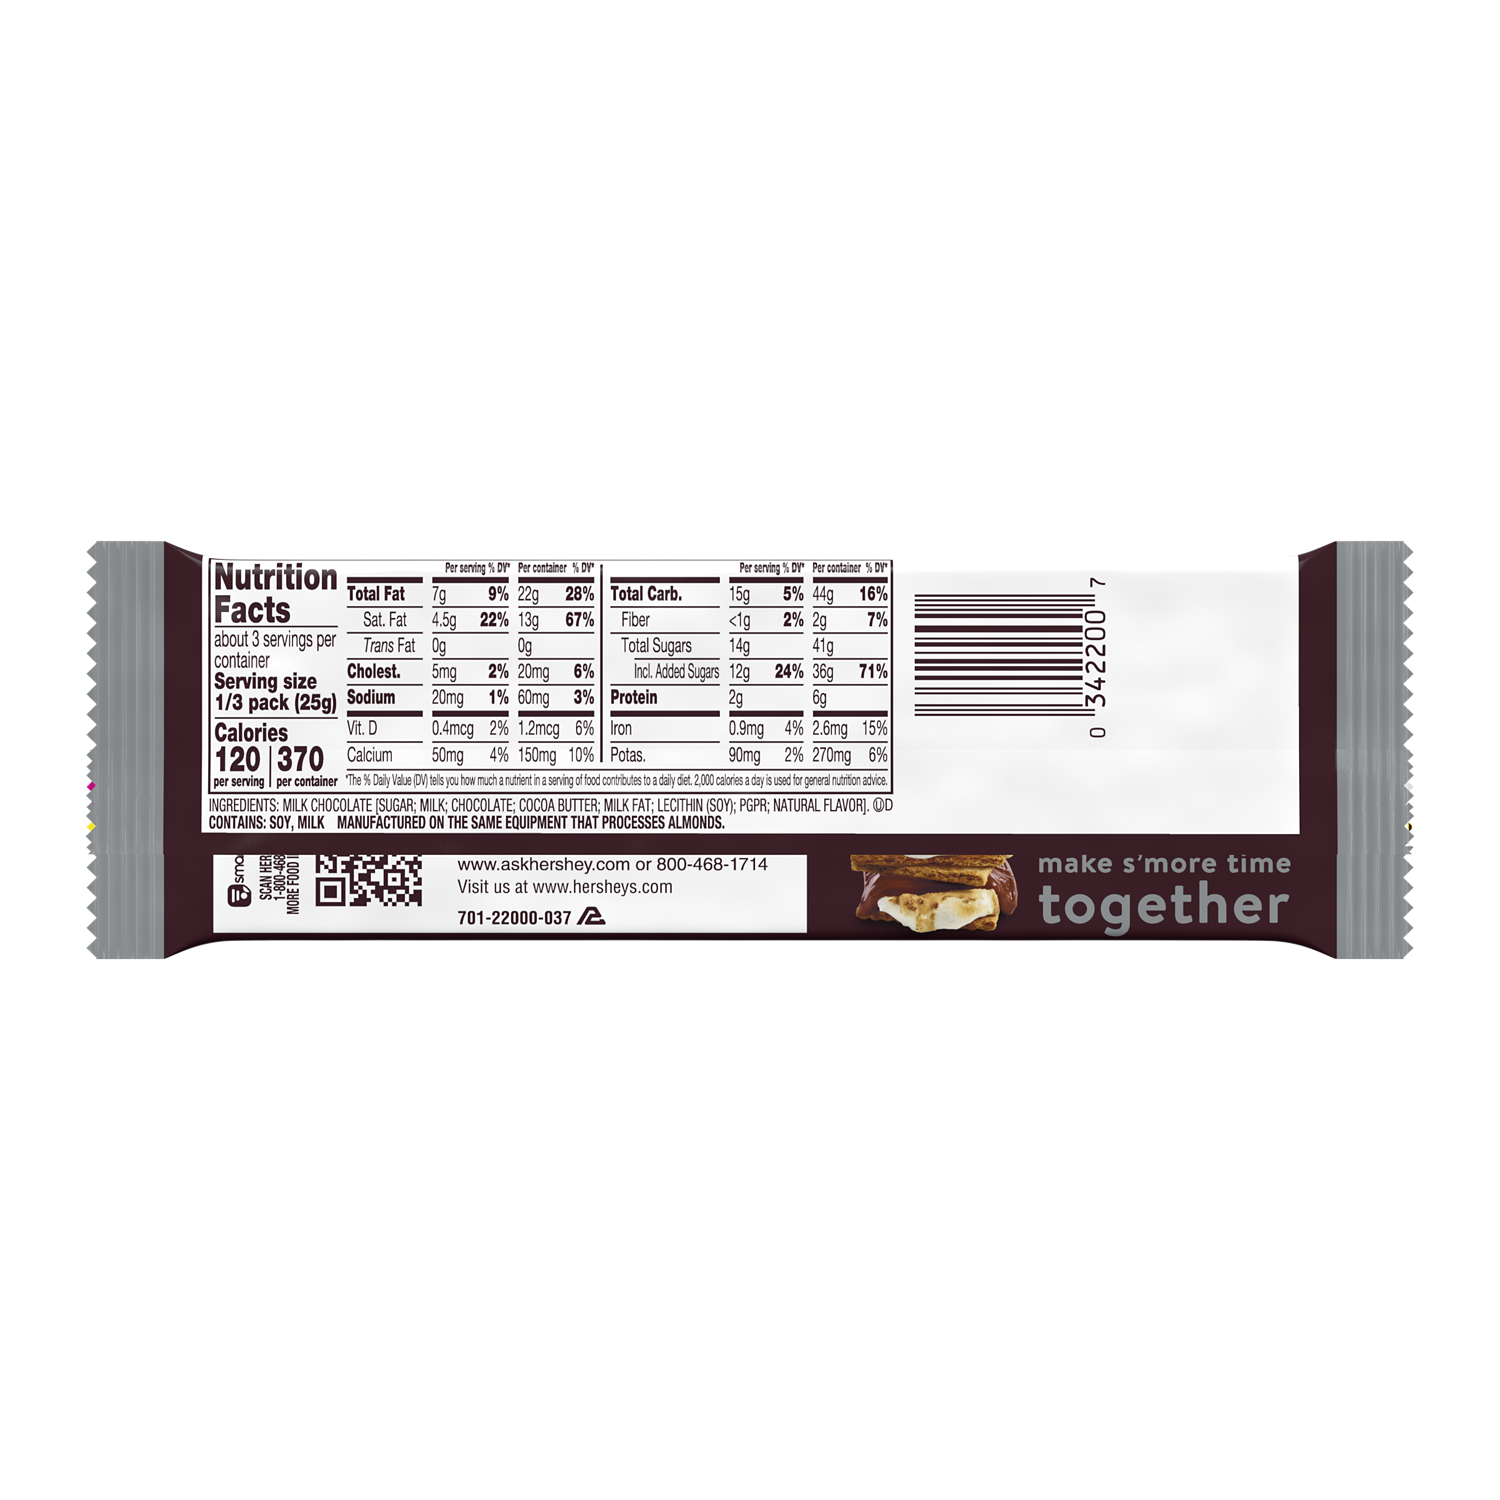 HERSHEY'S Milk Chocolate King Size Candy Bar, 2.6 oz - Back of Package